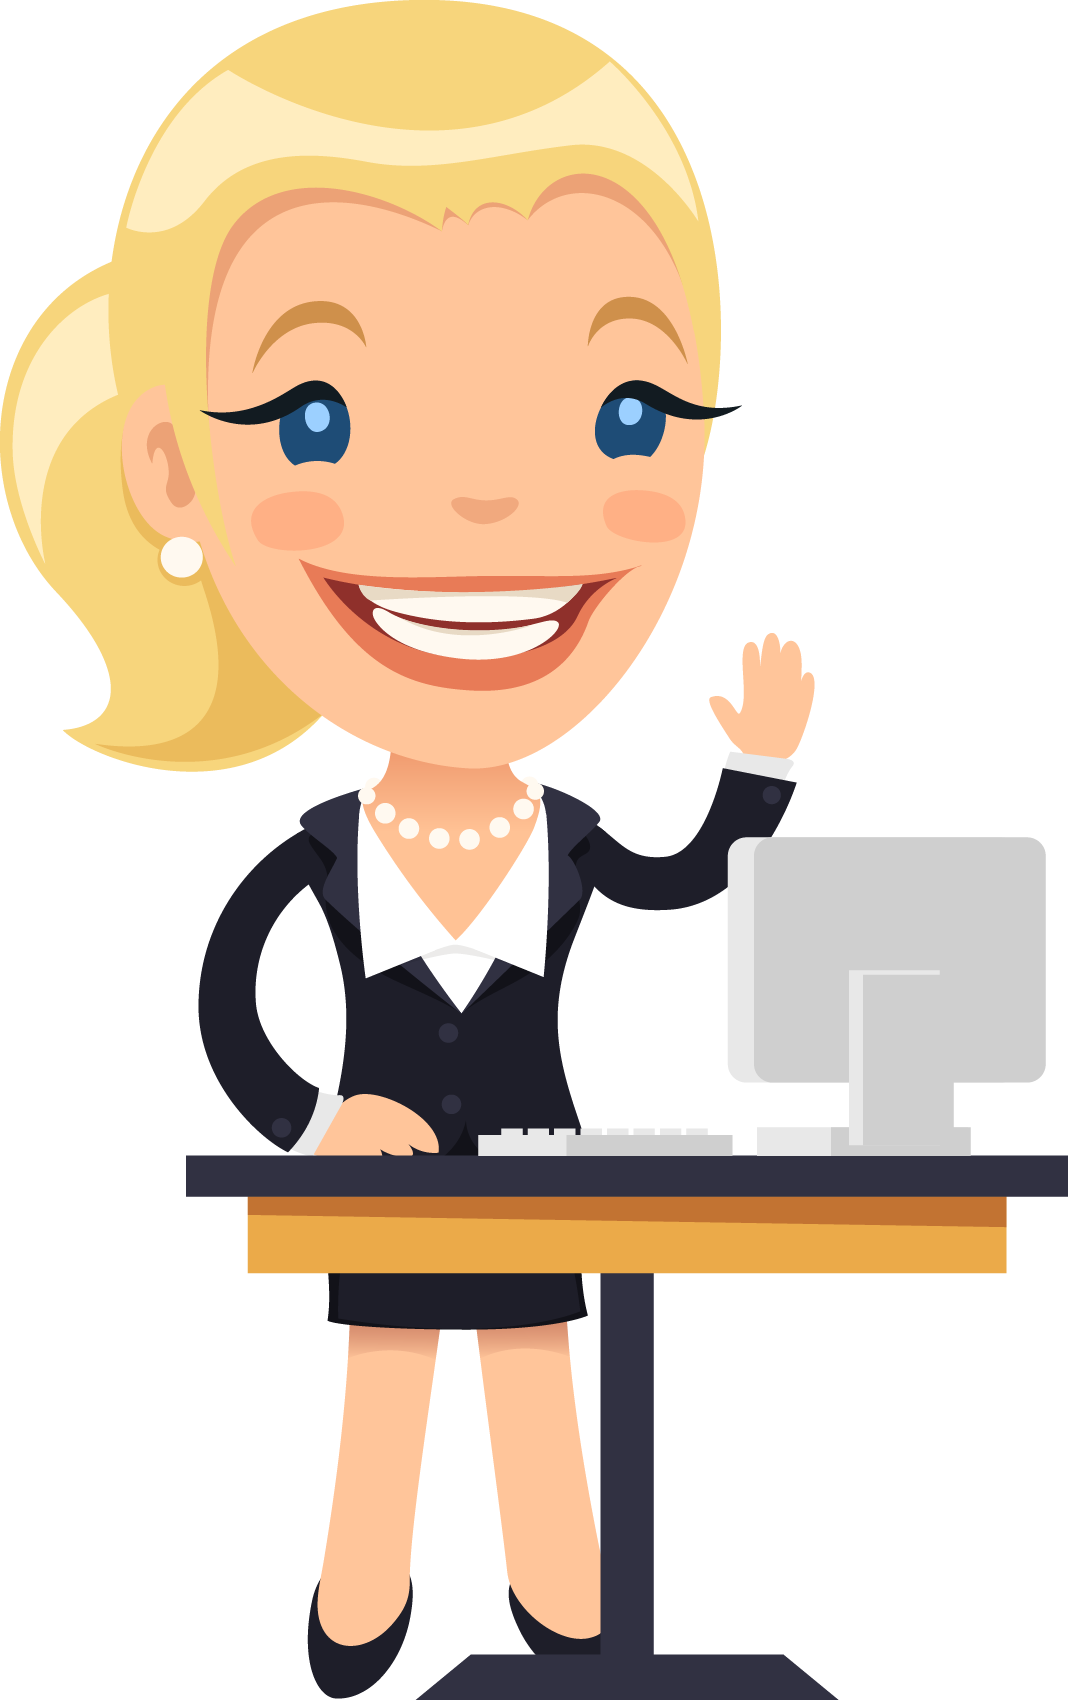 Professional clipart in charge. Cartoon female desk illustration